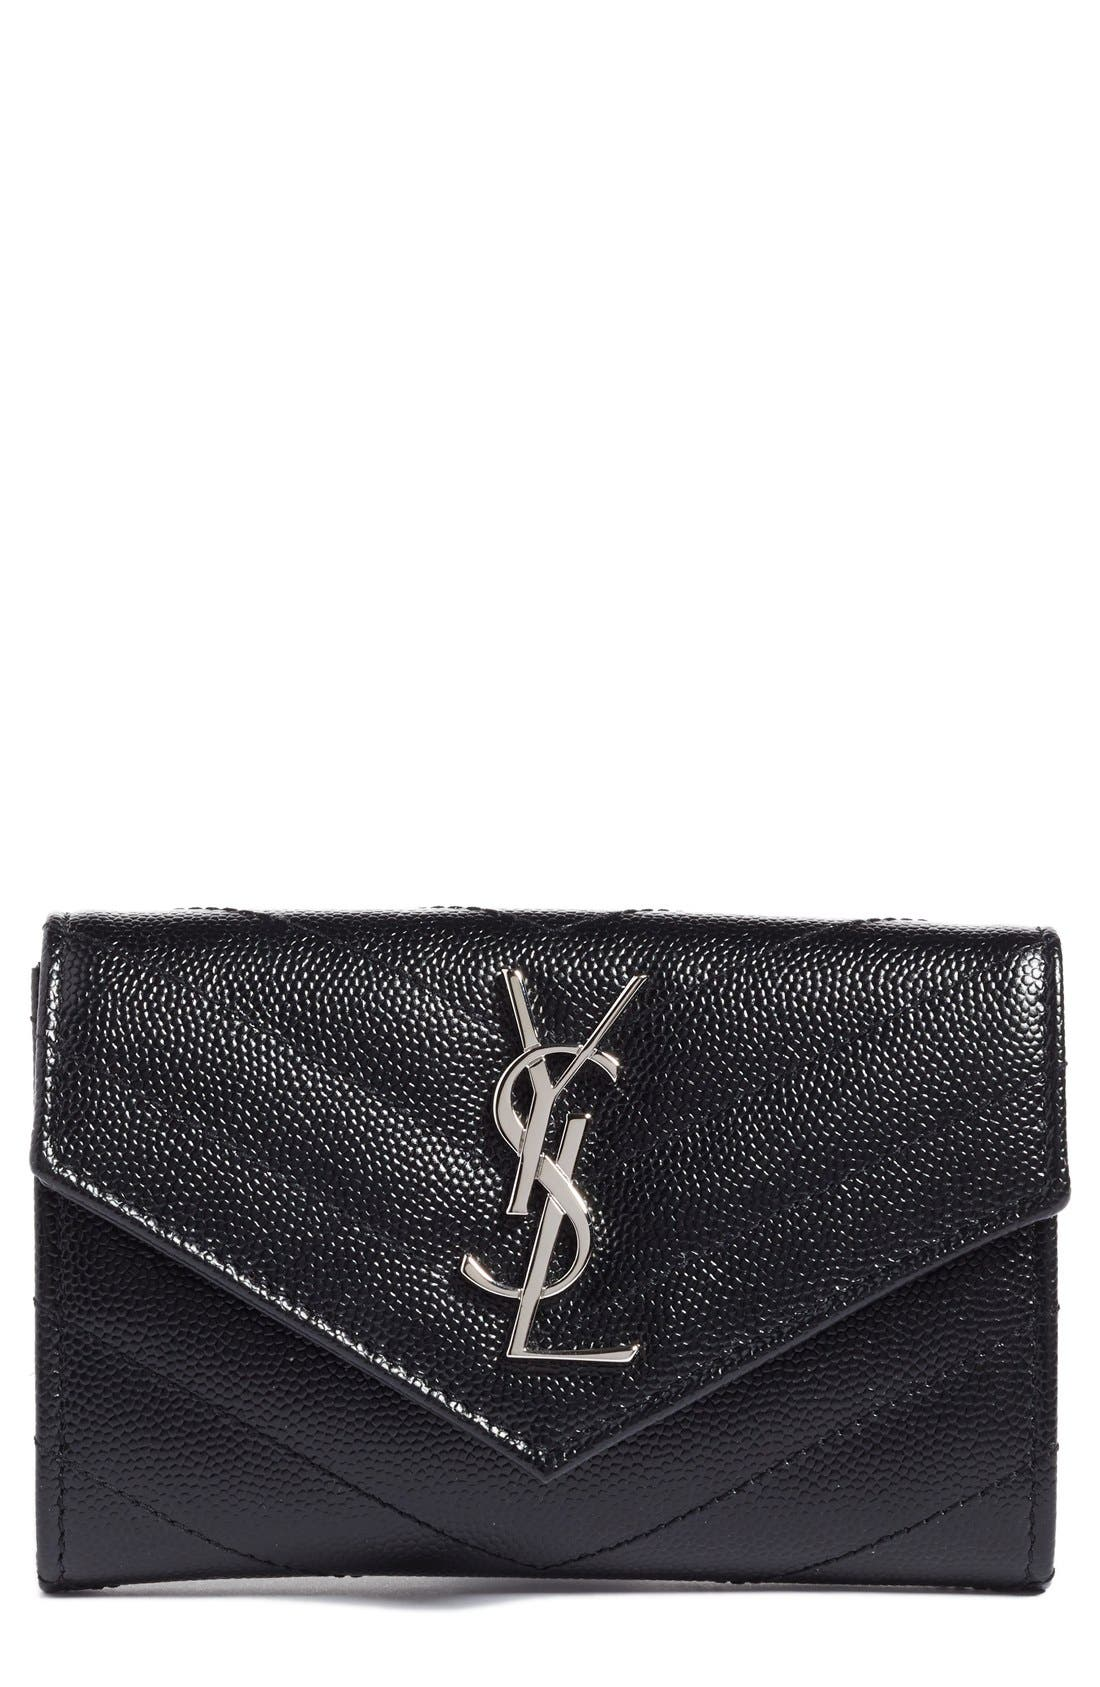 SAINT LAURENT Small Monogram Leather French Wallet